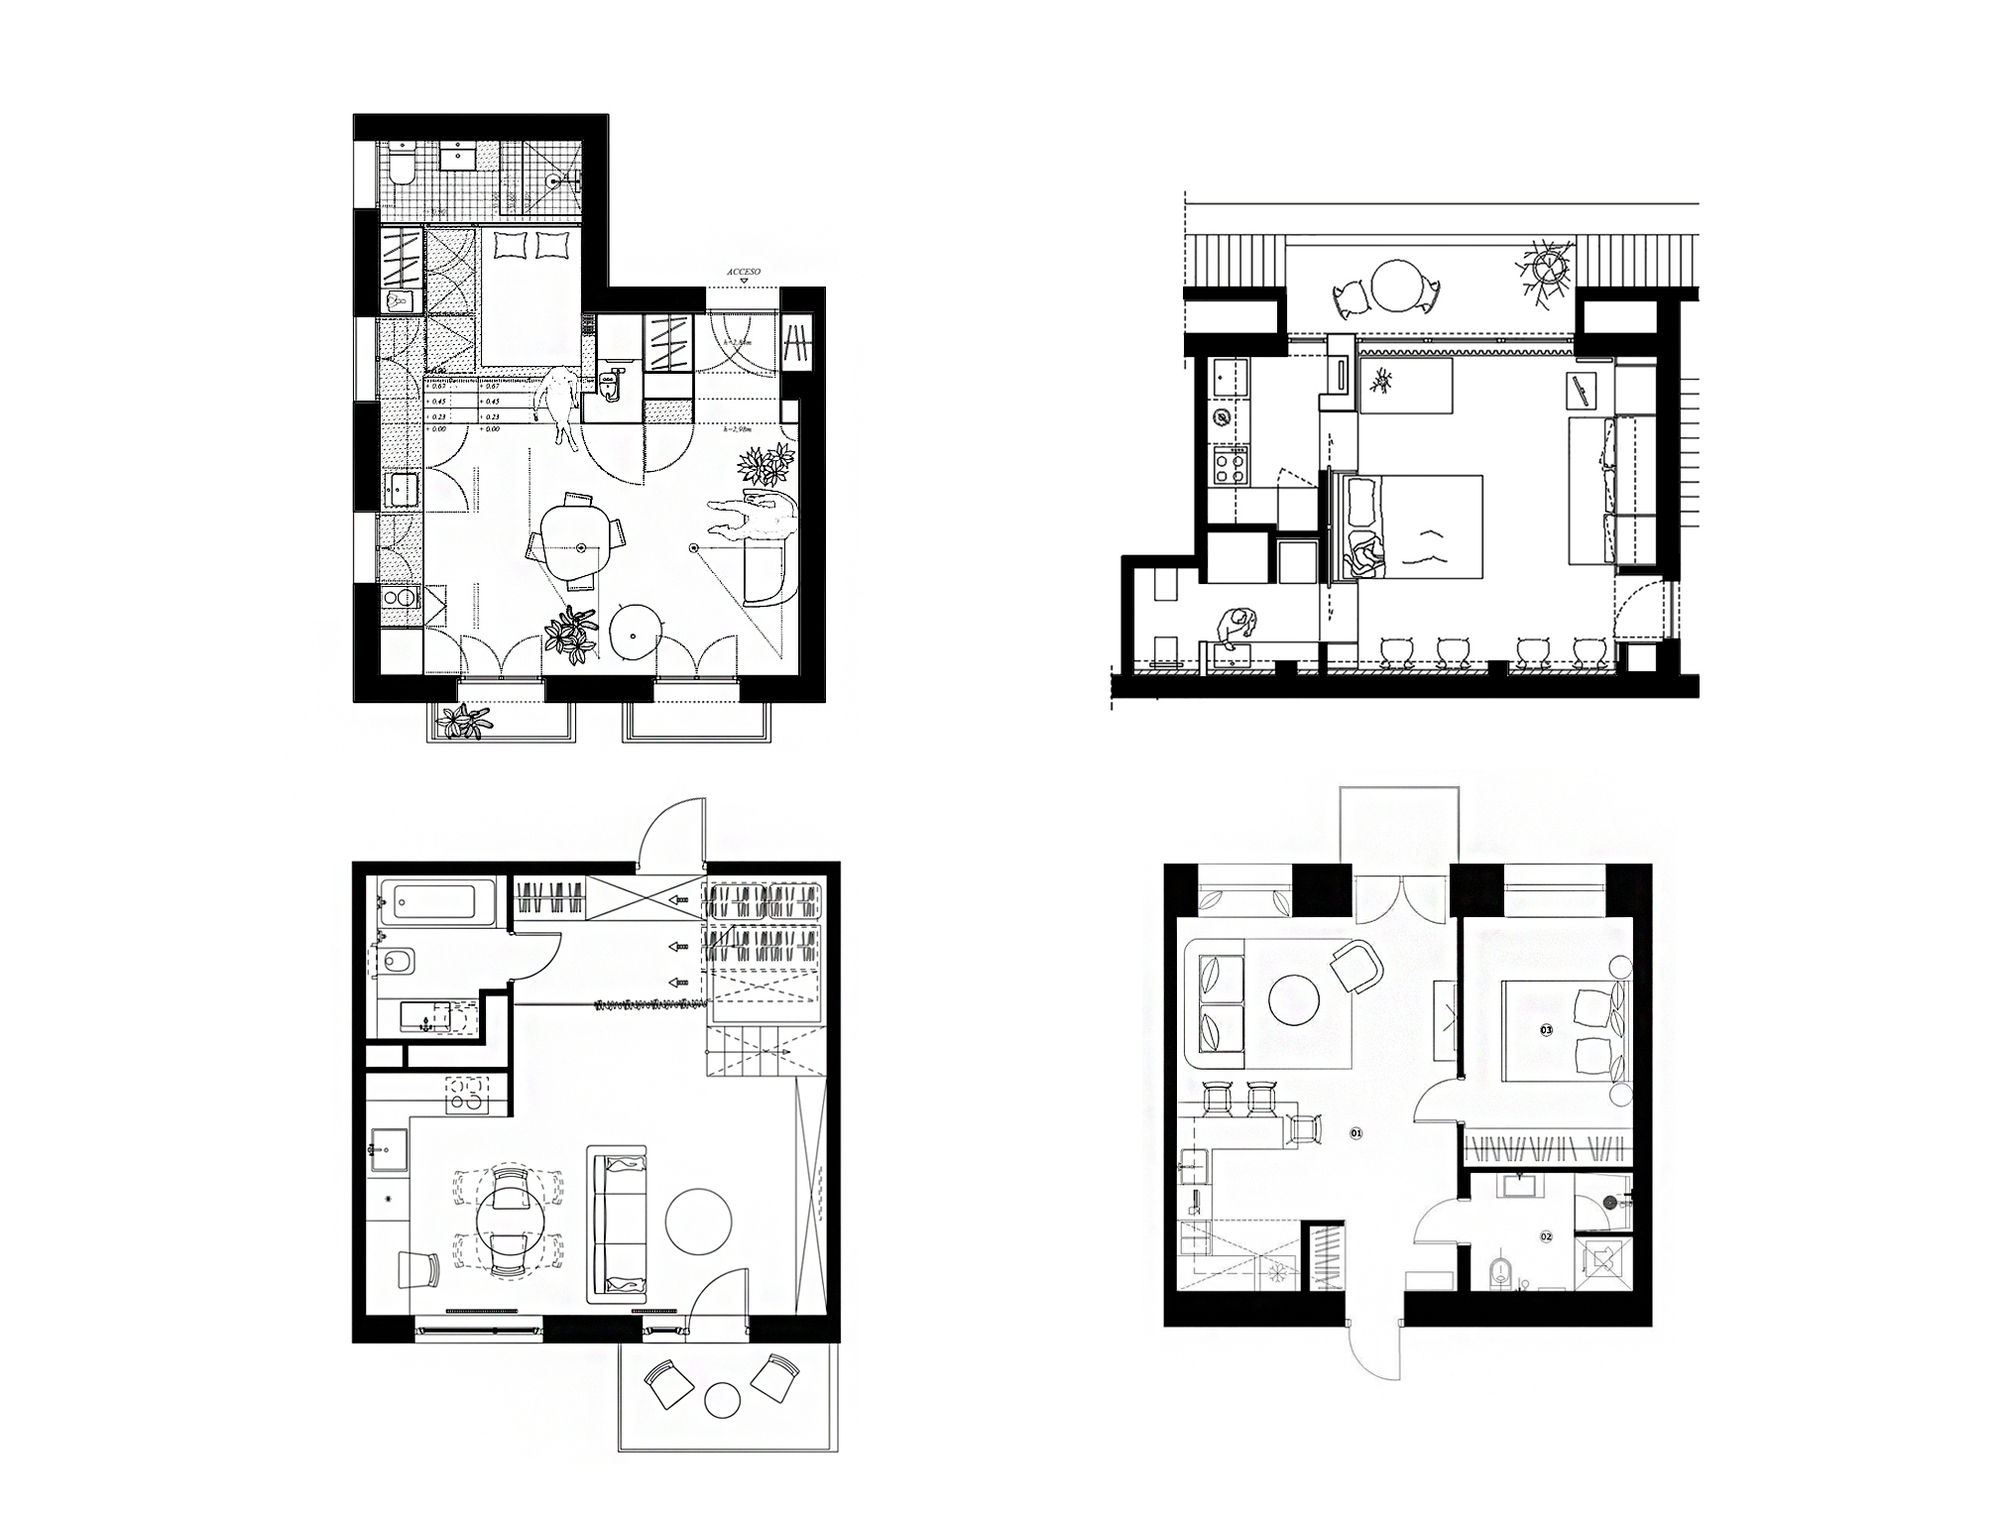 50*50 Gallery Of House Plans Under 50 Square Meters: 30 More Helpful Examples Of Small-scale Living - 6